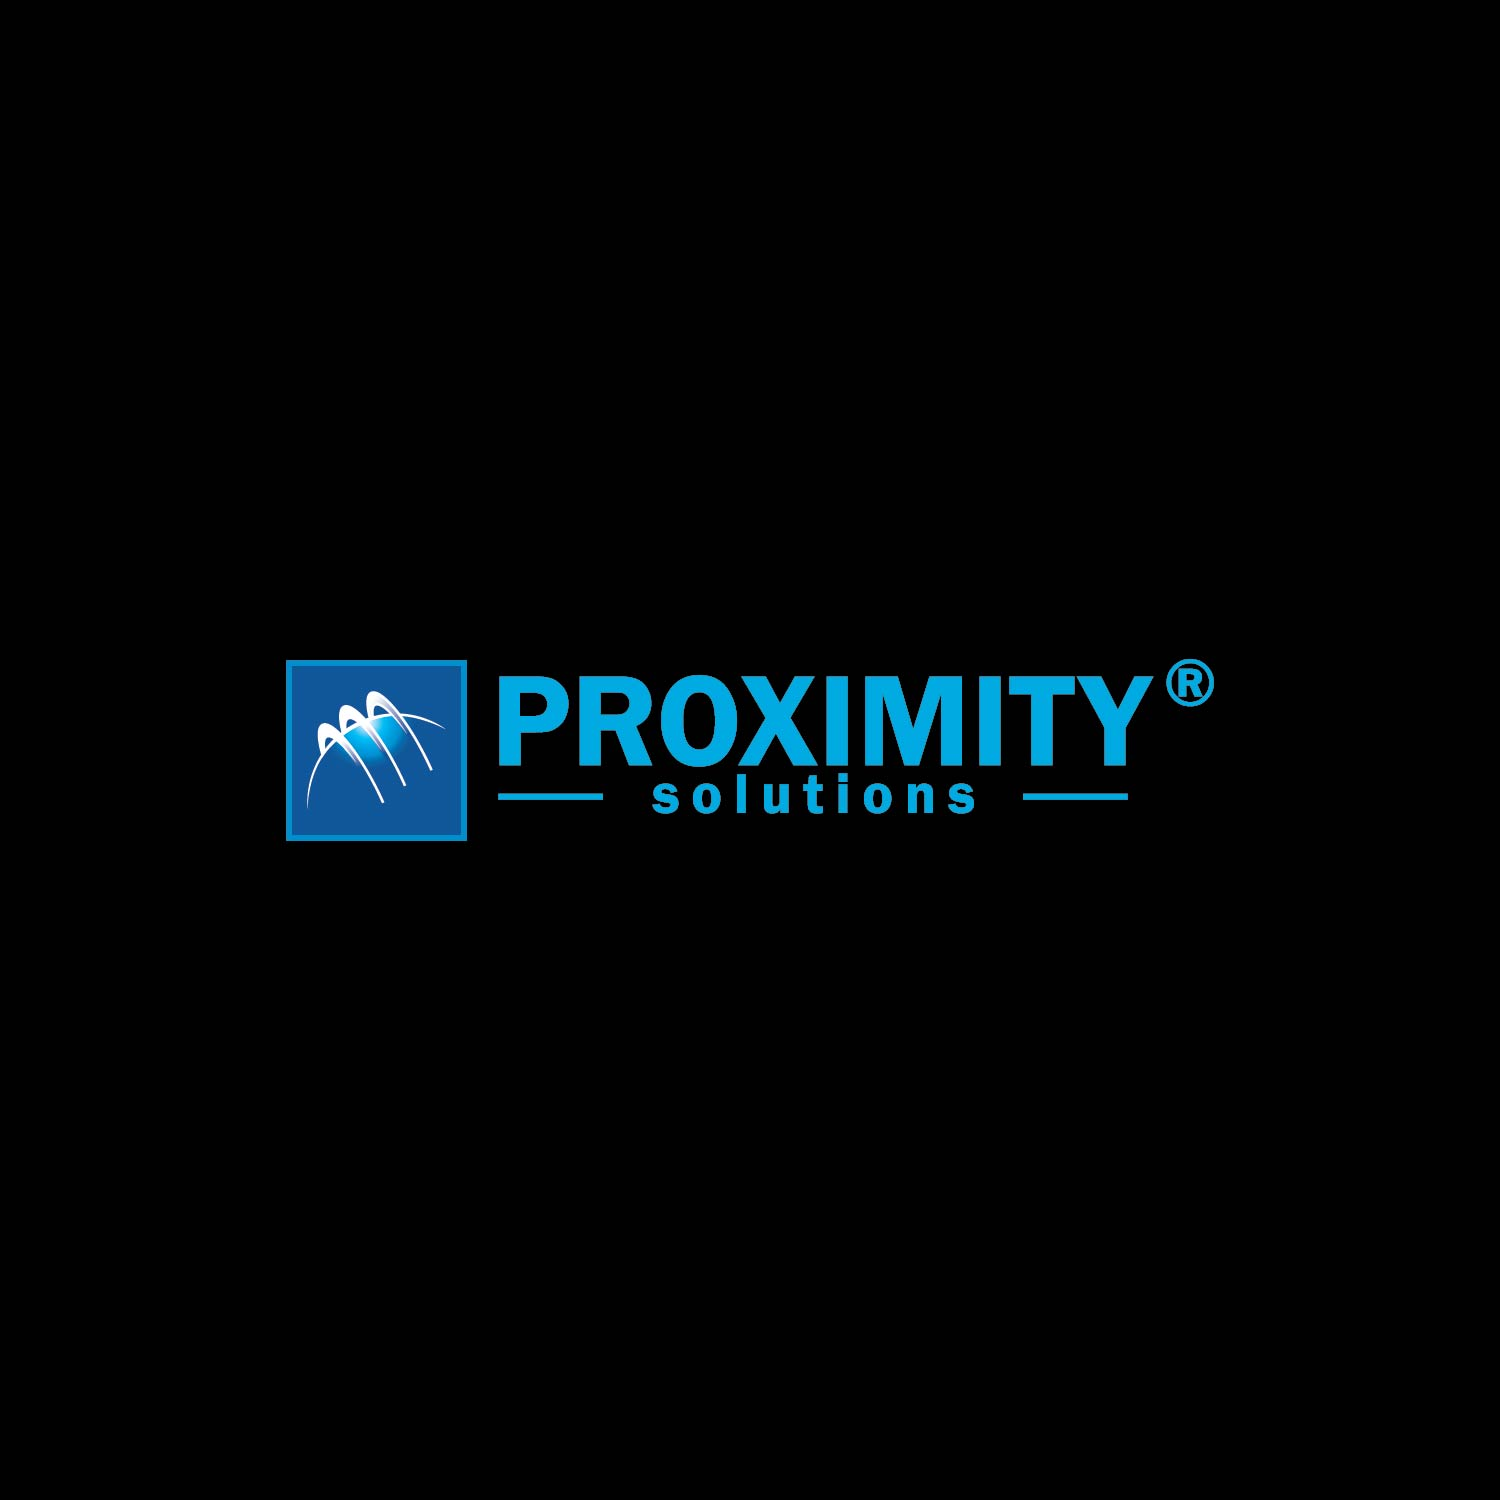 Logo Design by lagalag - Entry No. 115 in the Logo Design Contest New Logo Design for Proximity Solutions.